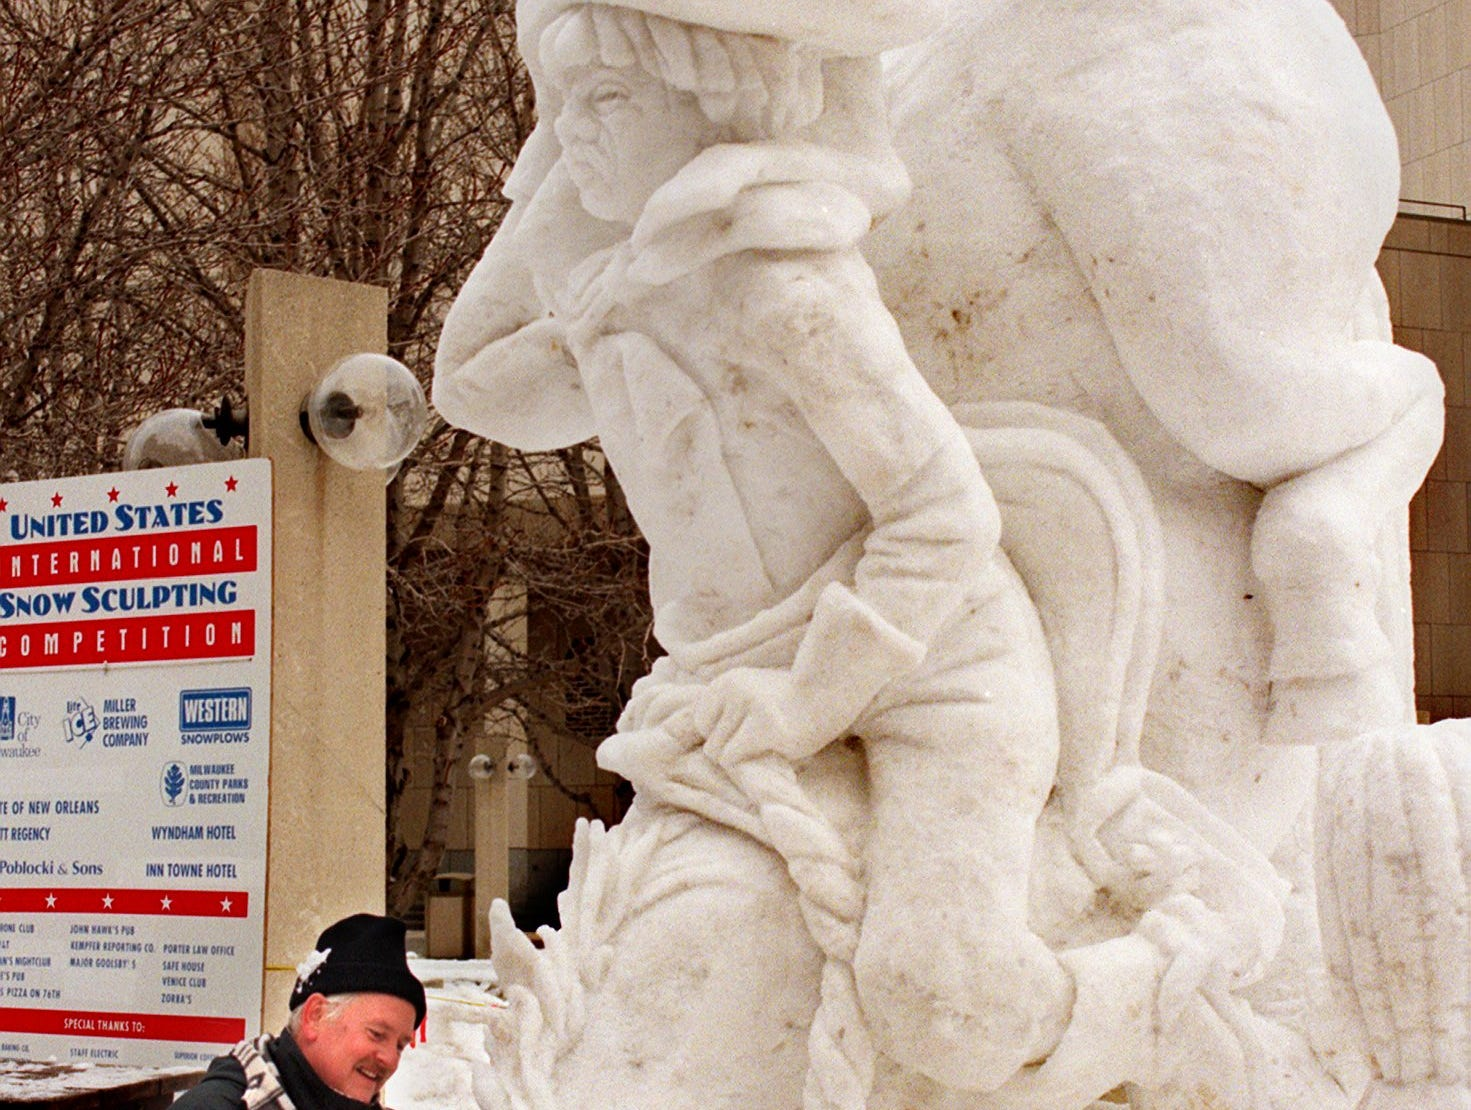 Snow Sculpt-Horse, 1/31/98, Walicki, Jeff Olson, of Muskego, puts finishing touches on a snow sculpture titled 'Wild West' Saturday shortly before judging of the International Snow Sculpting competition held at the Marcus Center for Performing Arts.